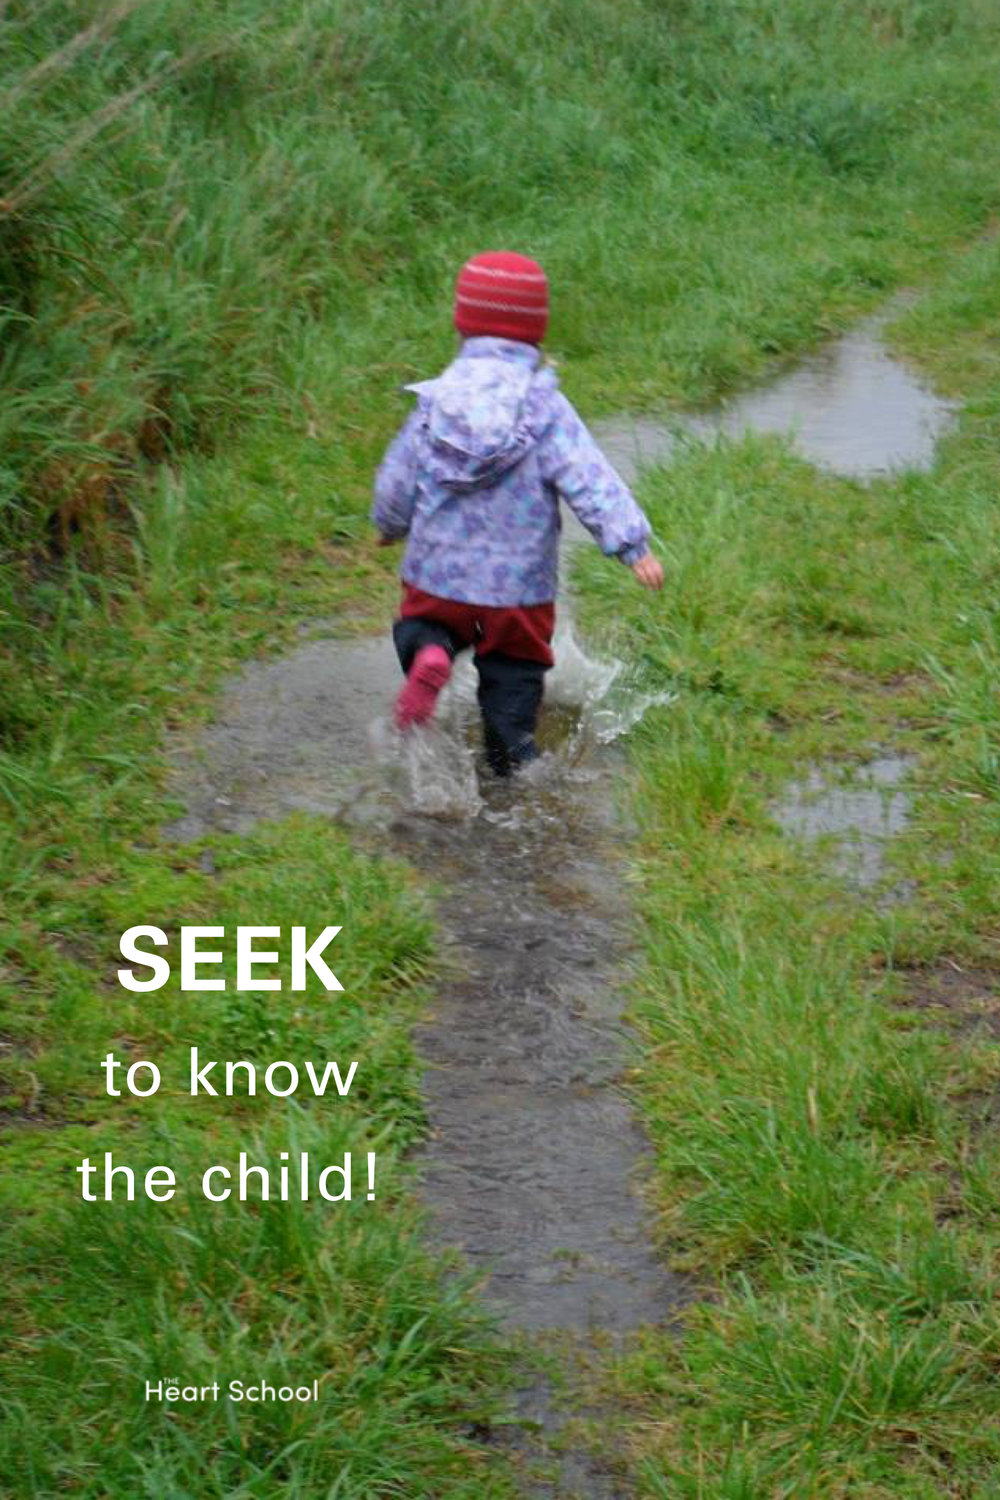 We have to care for children enough that we cast aside our own preconceived ideas, egos and adult agendas so we can 'follow the child'. The essential task of the teacher is to observe. Only when we observe and seek to know each child can we truly follow them.